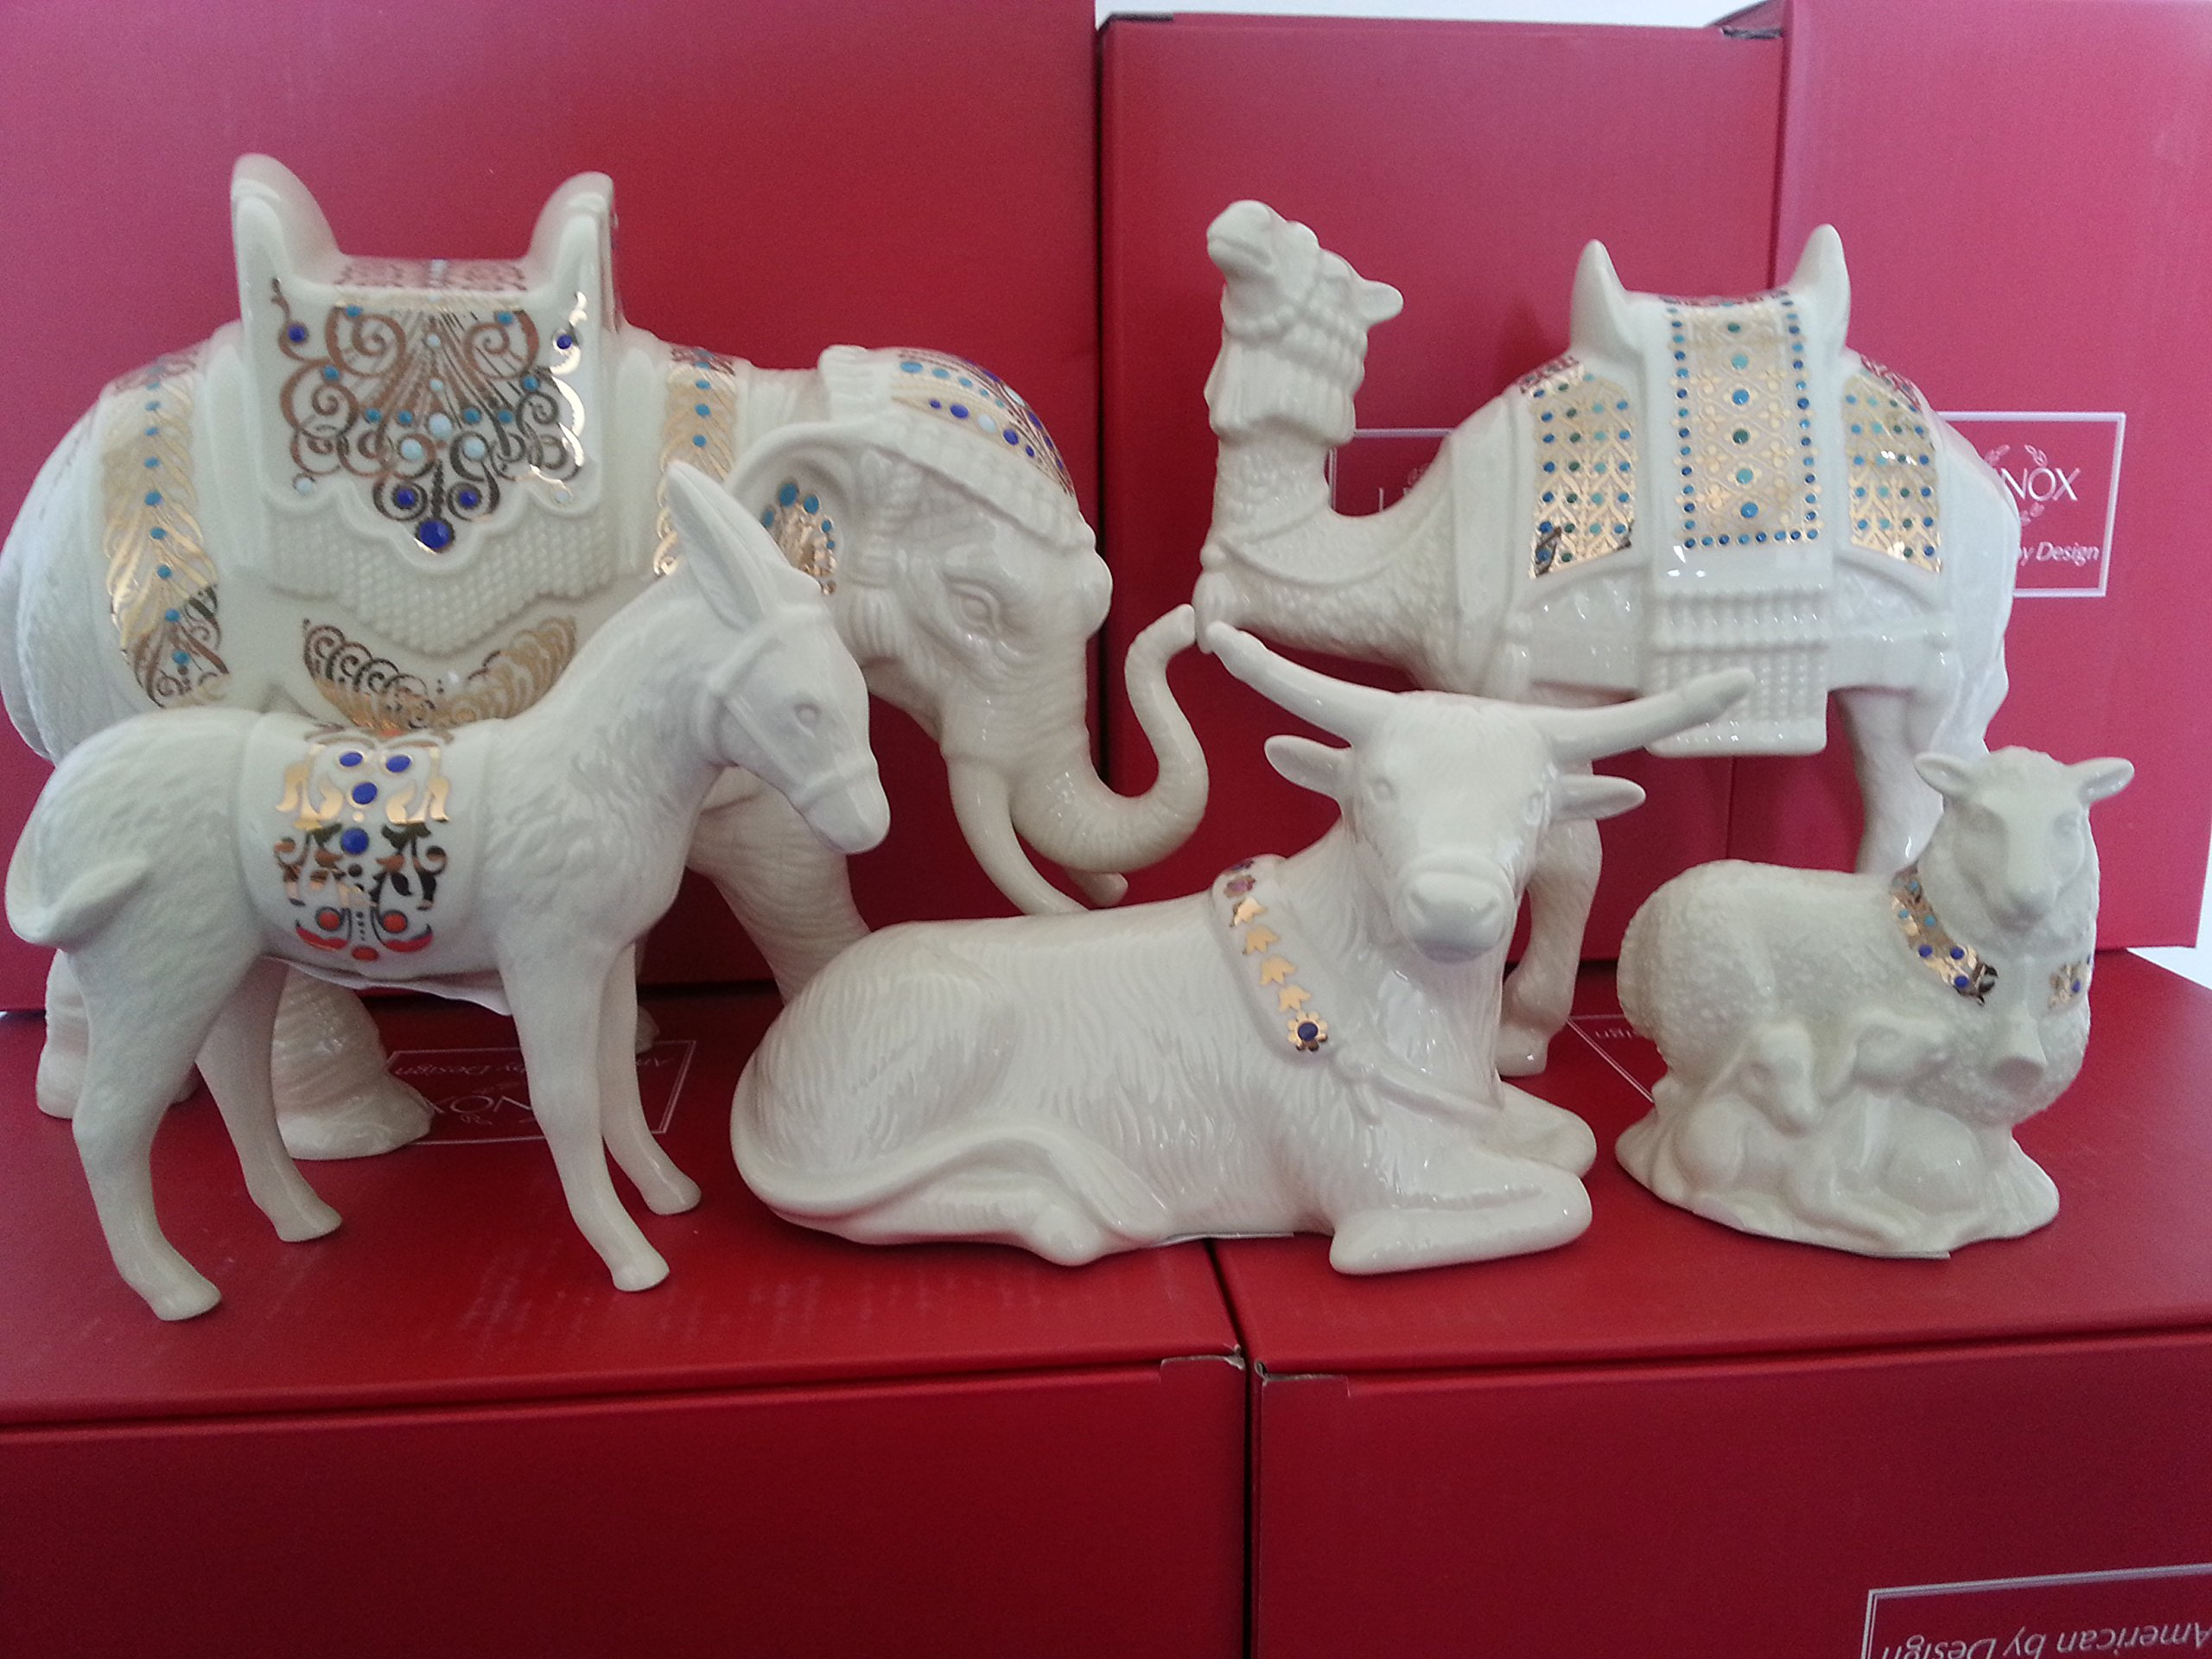 Lenox China Jewels Nativity Animals Figurines Elephant Camel Ox Sheep Donkey Set of 5